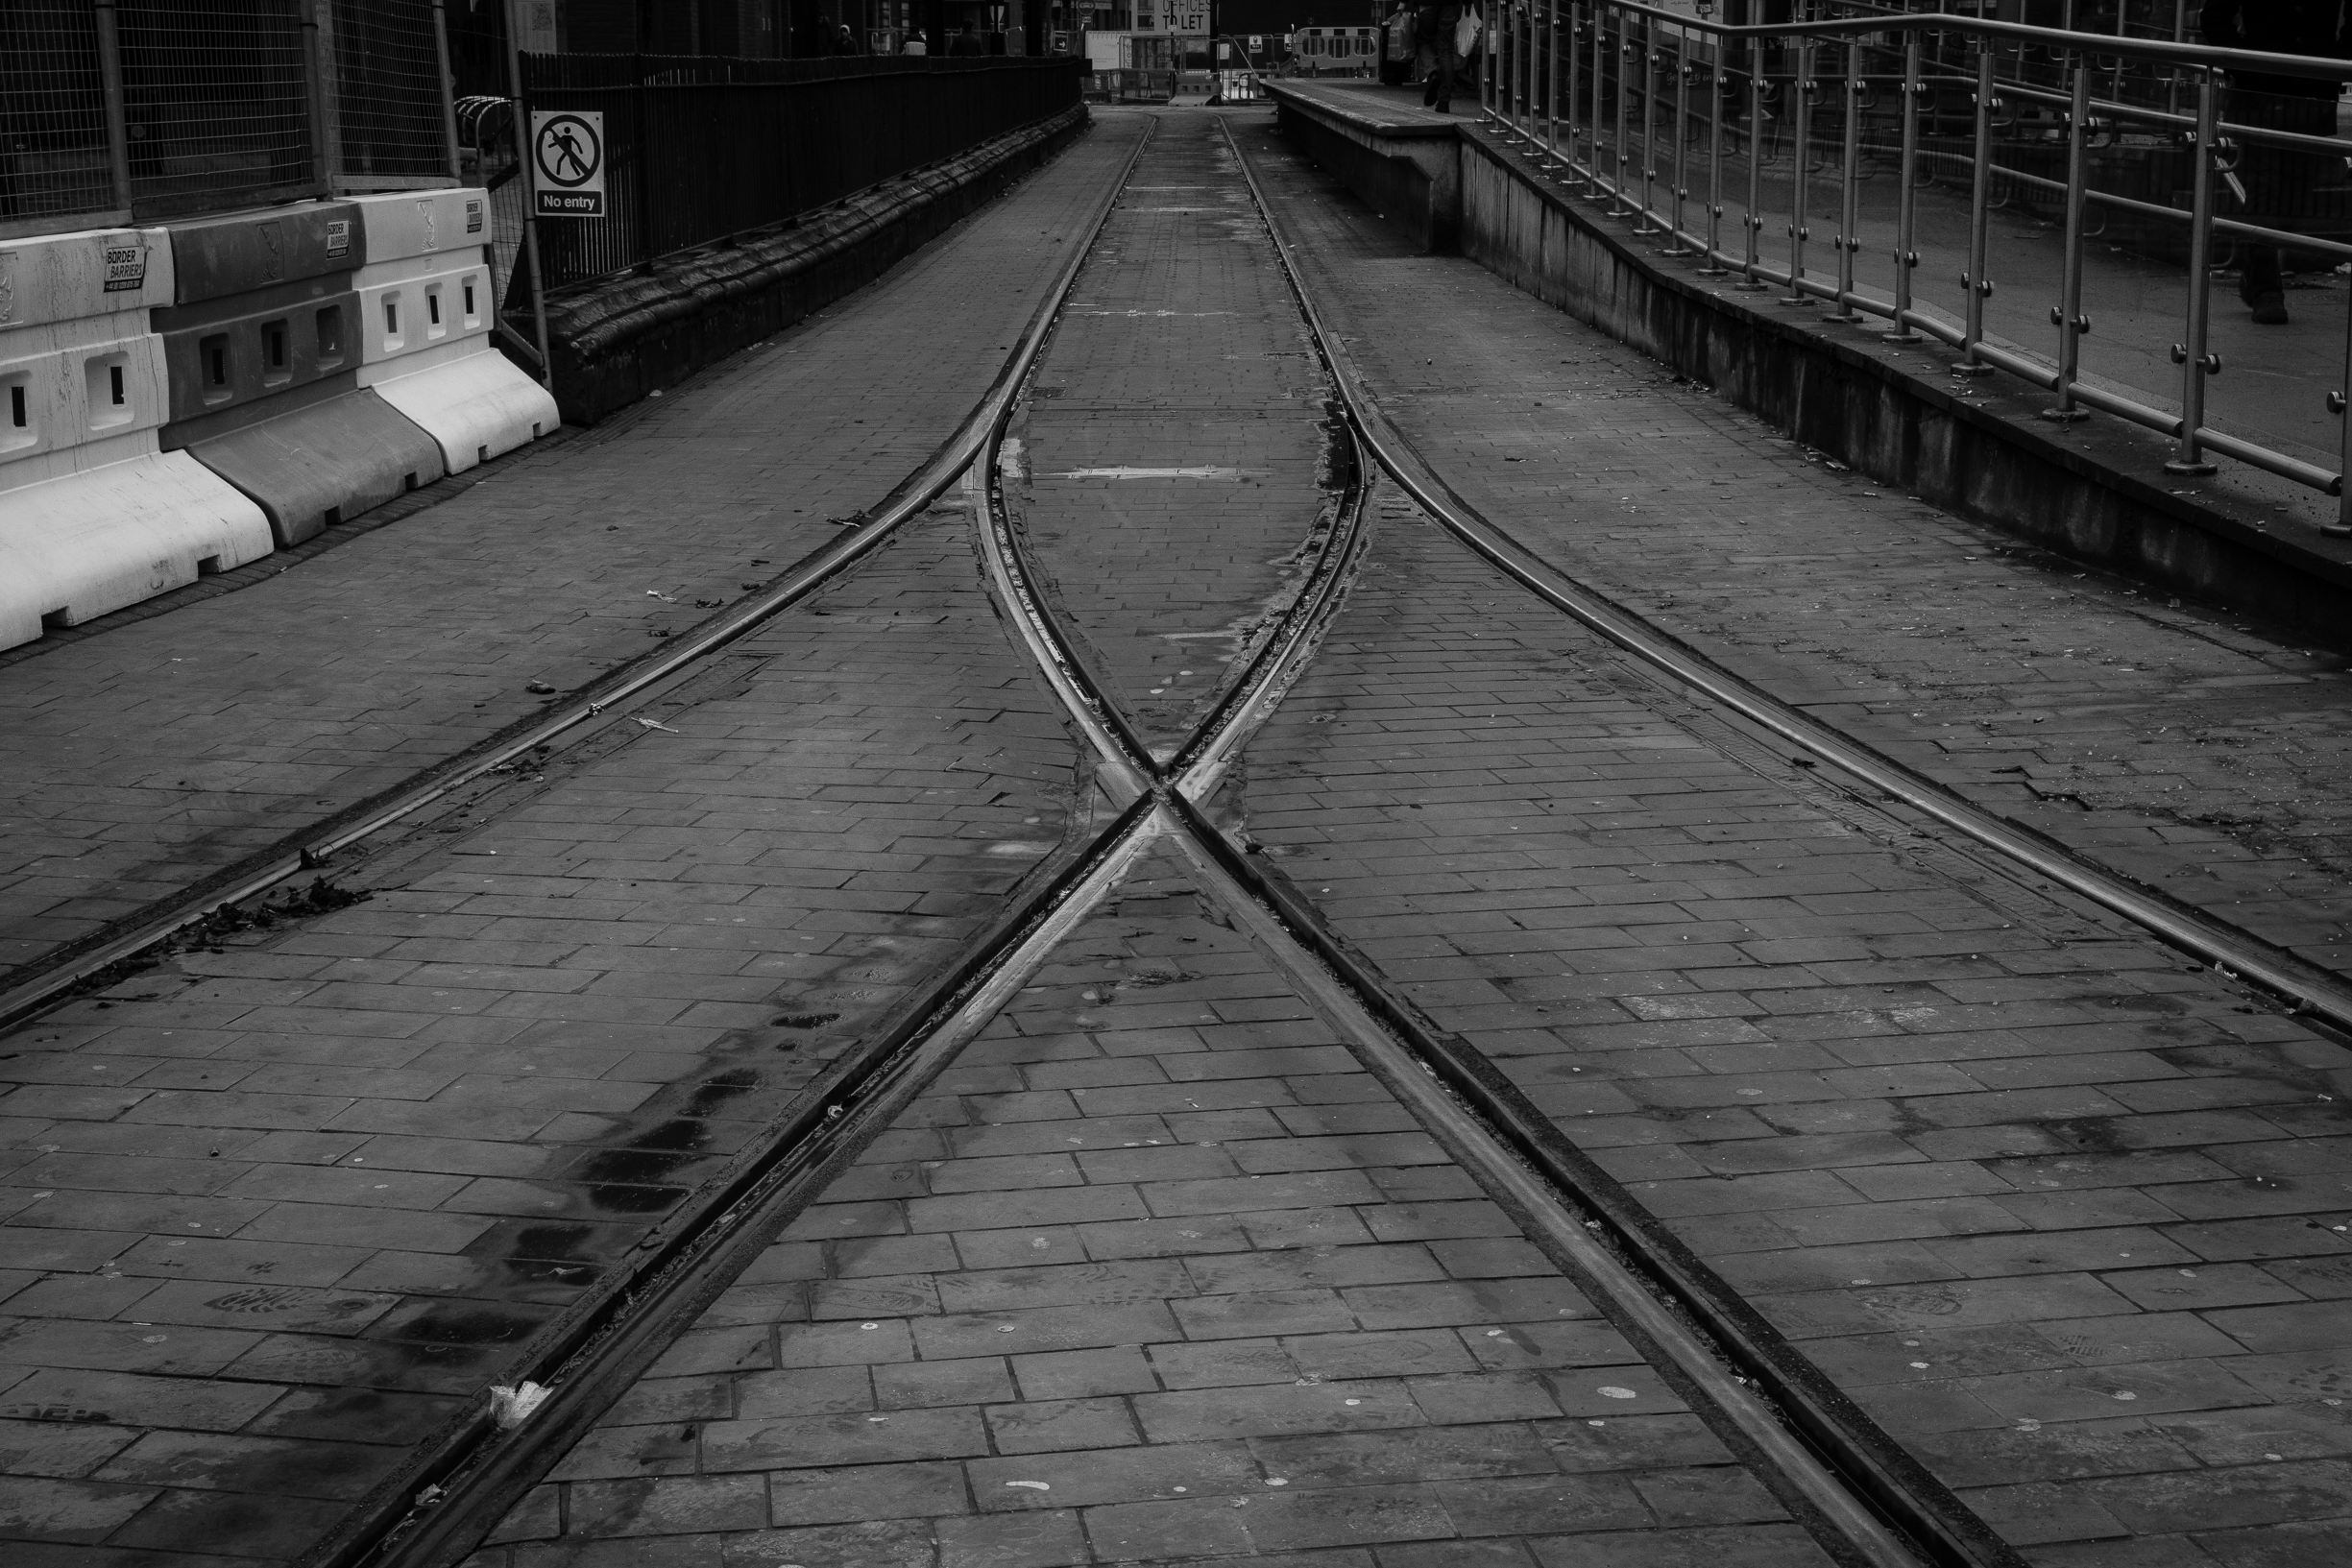 Railway lines, a common example of lines being used as a compositional element or the subject of a photo itself. However with being commonly used it also risks becoming cliché. One of the challenges of taking a good photo is using common elements in a new way.